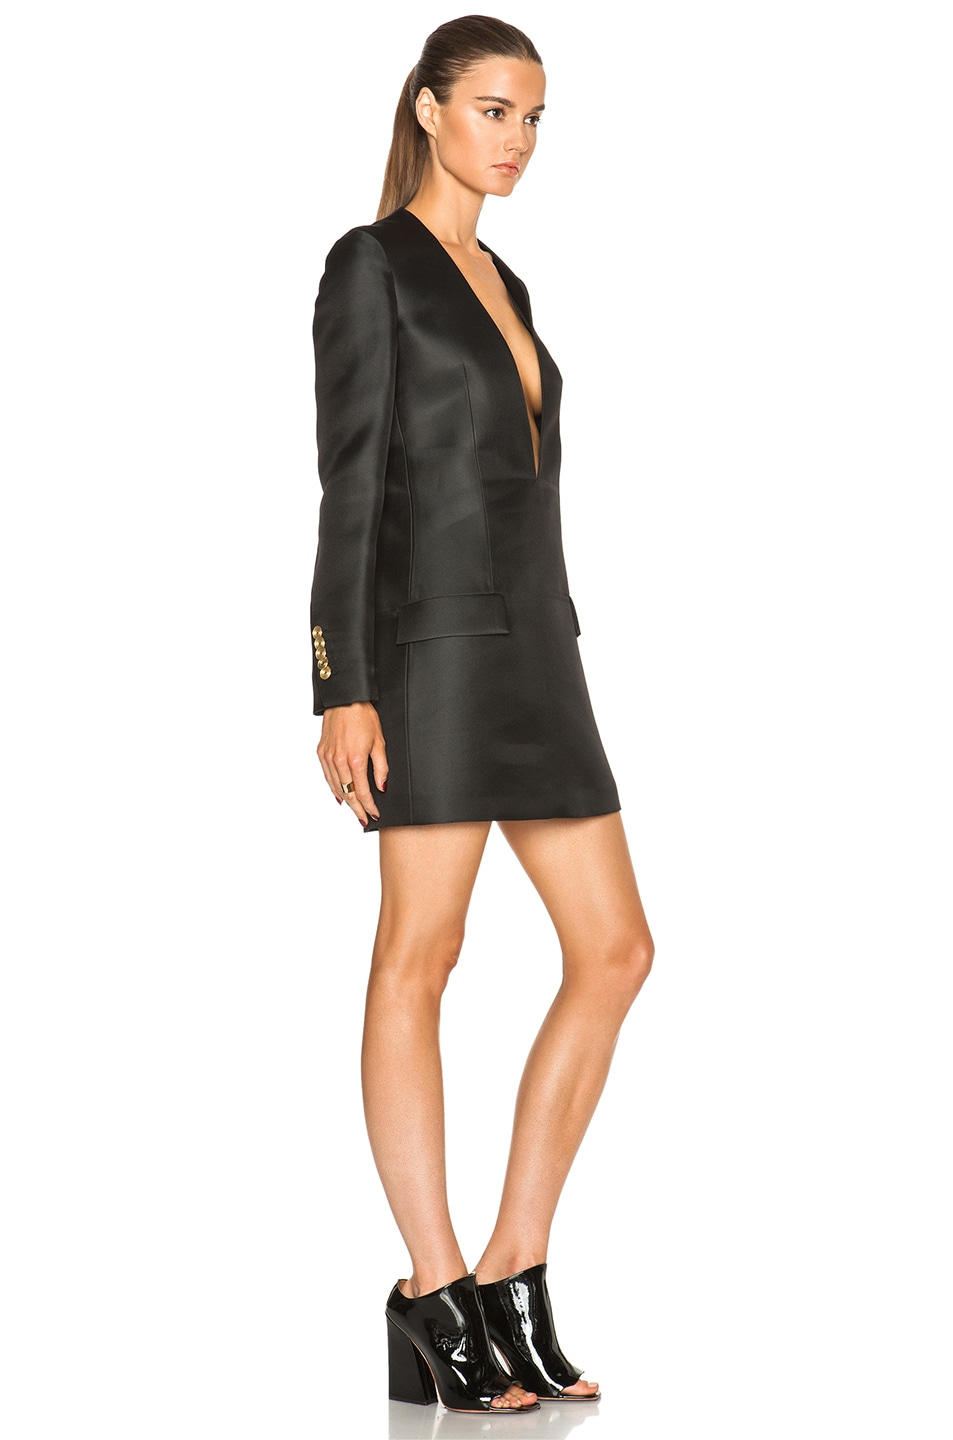 Ladies Black Dress Jacket